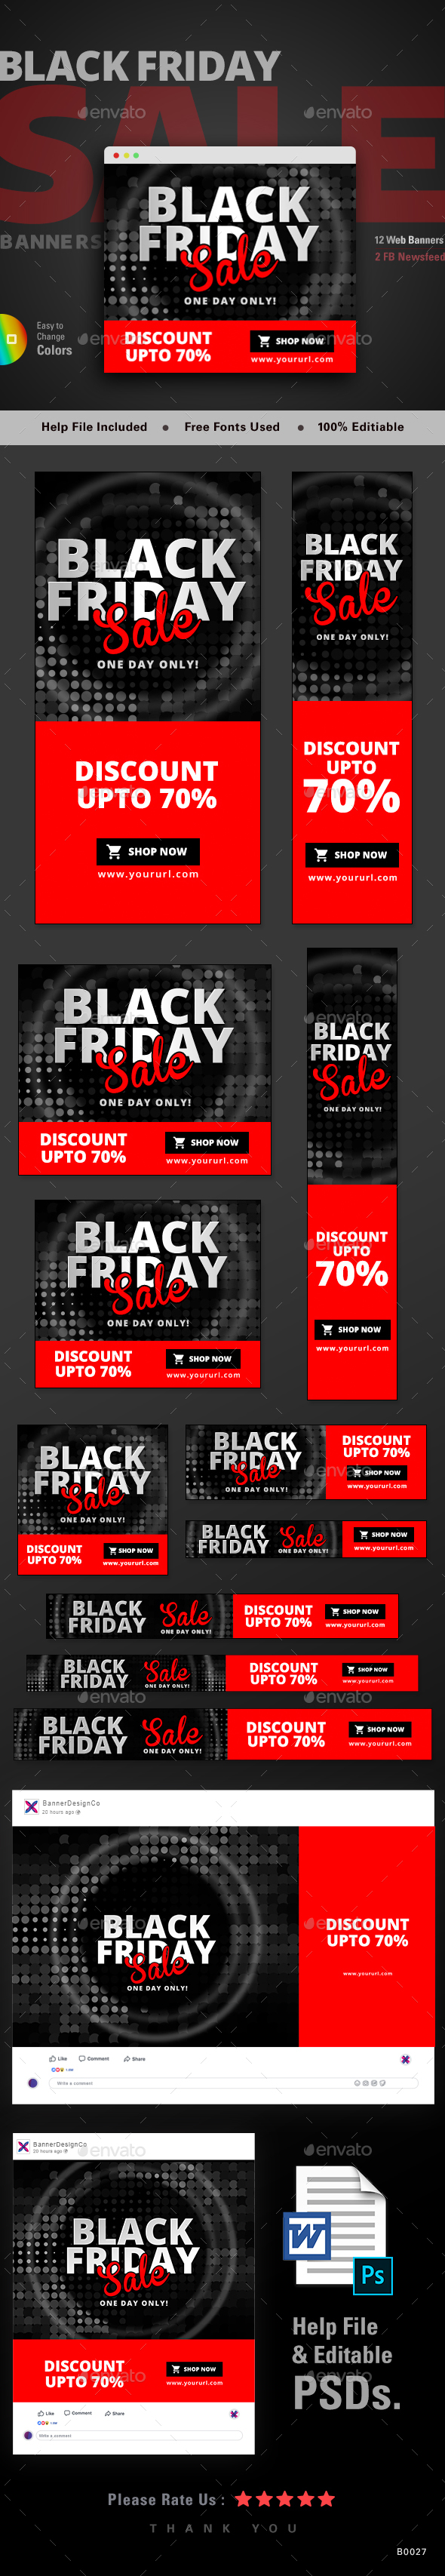 Black Friday Sale Web Banner Set - Banners & Ads Web Elements